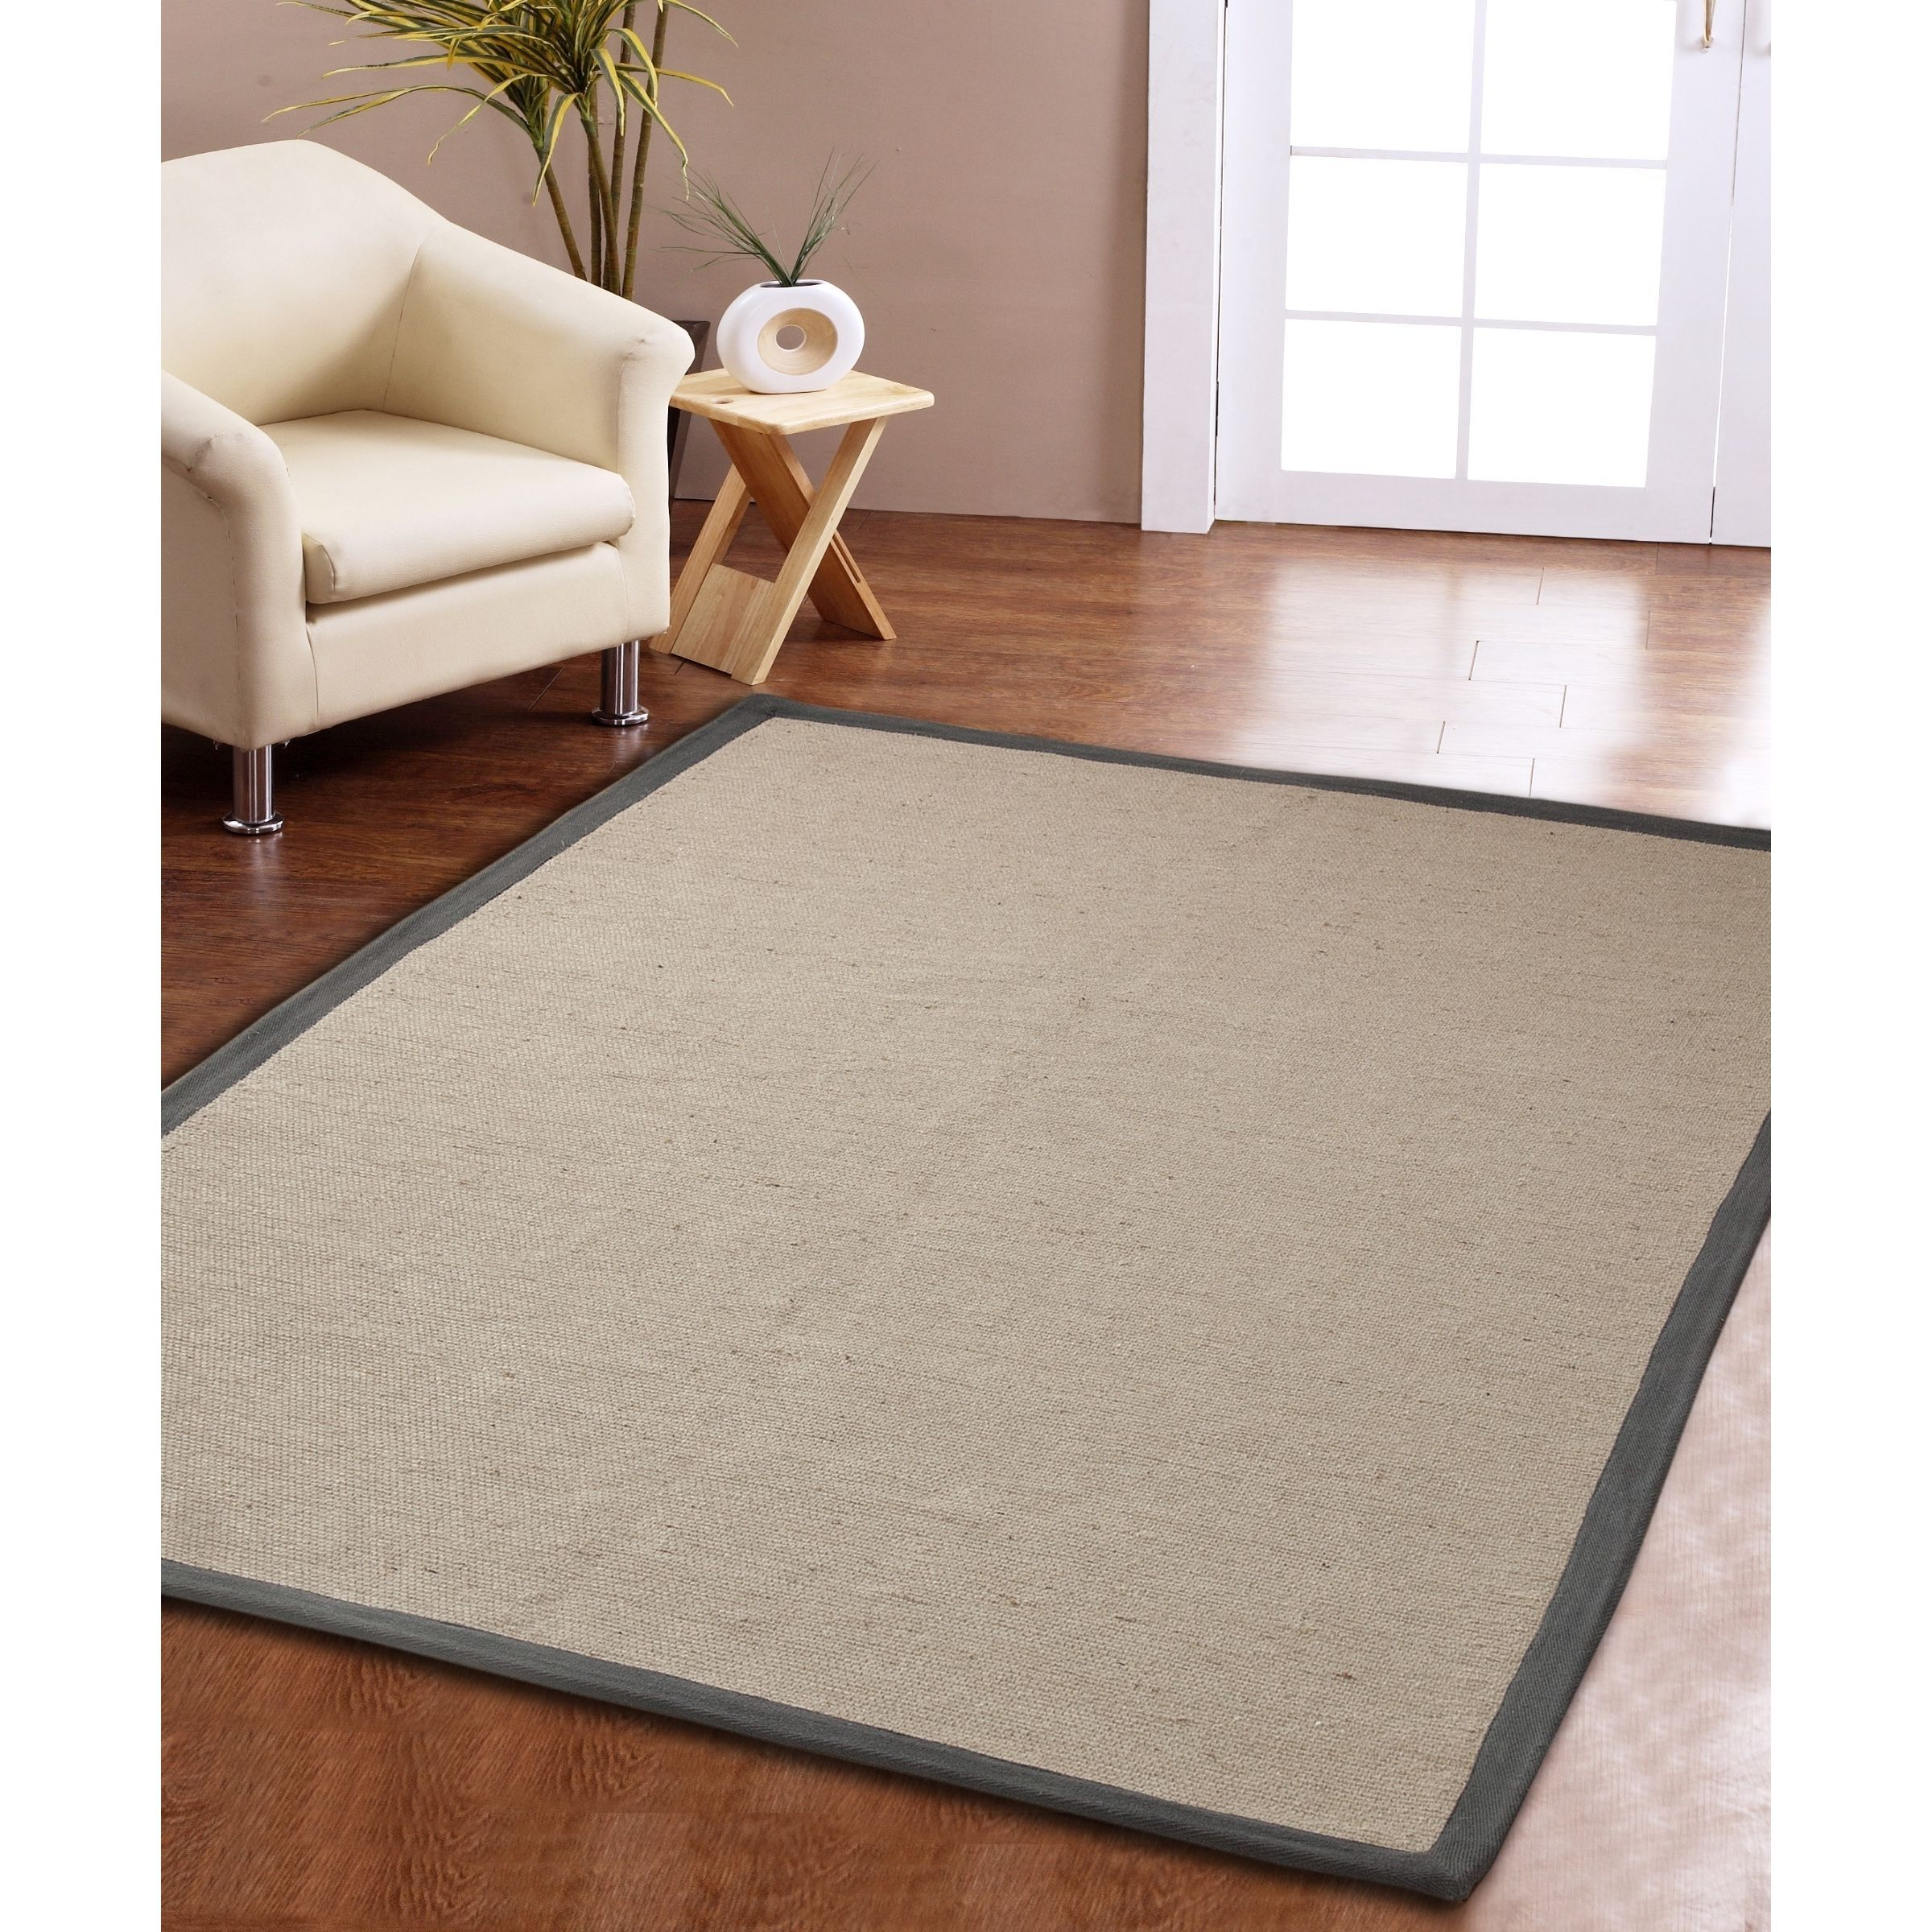 Affinity home collection eco natural cotton border jute rug u x